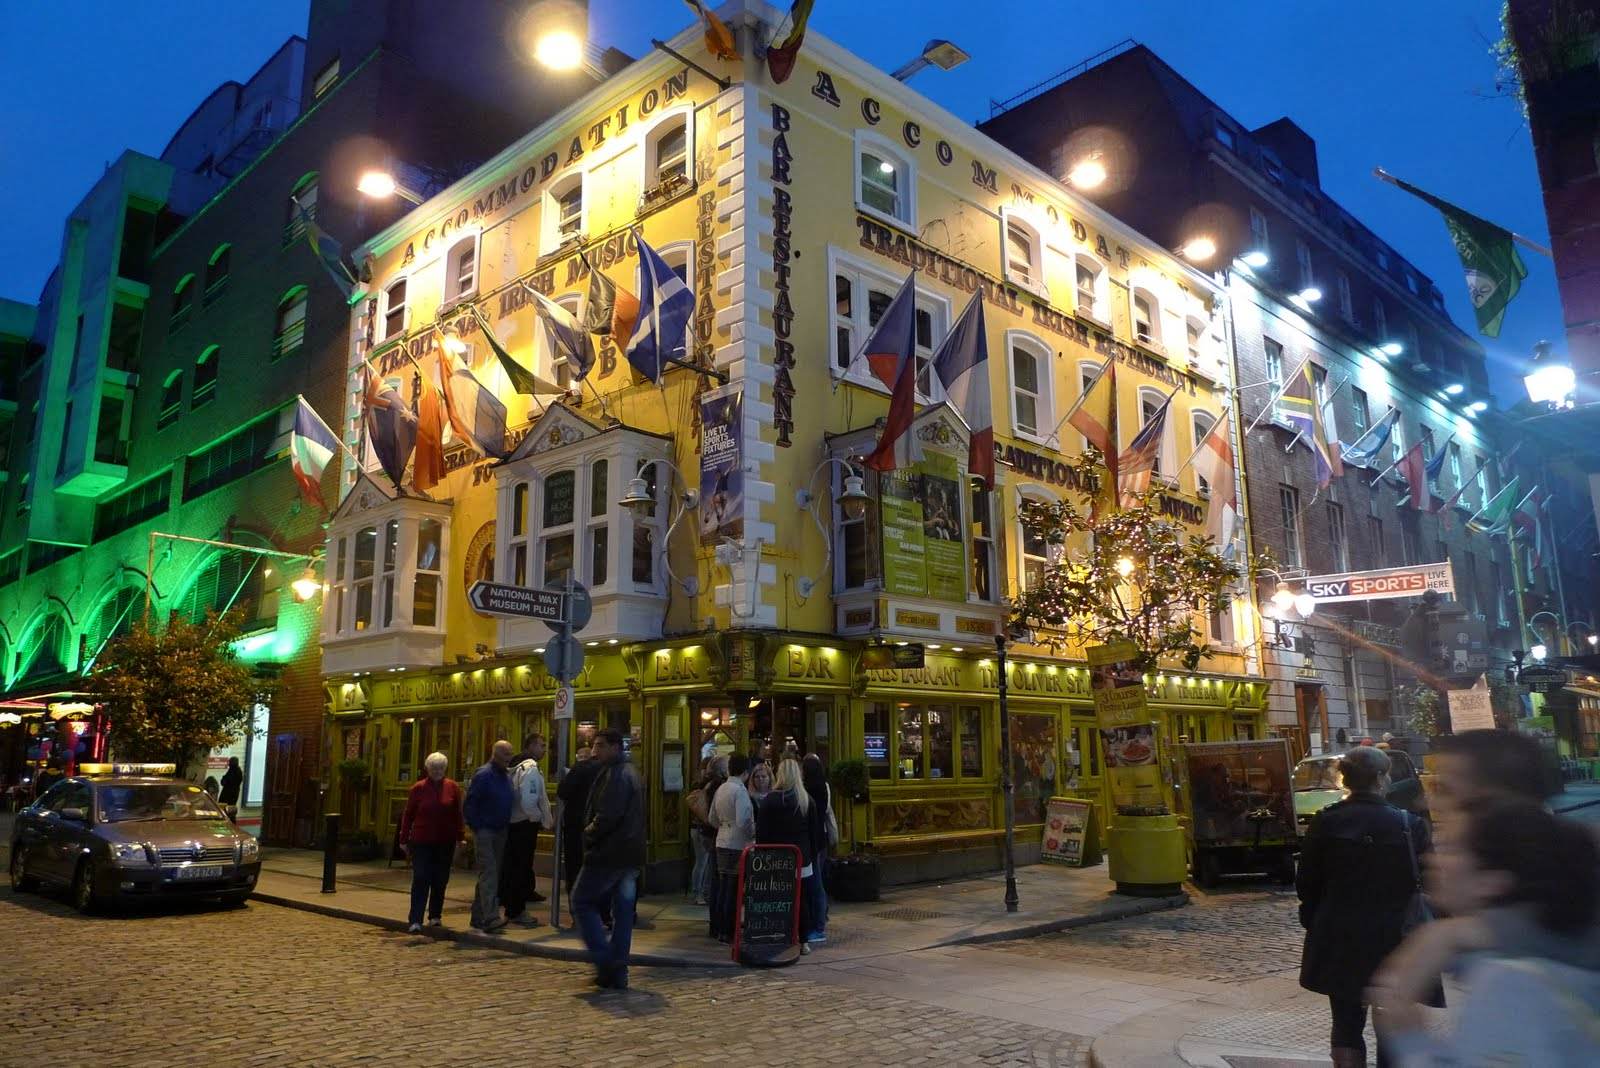 Bad Ass Cafe Dublin - The best music & food in Temple